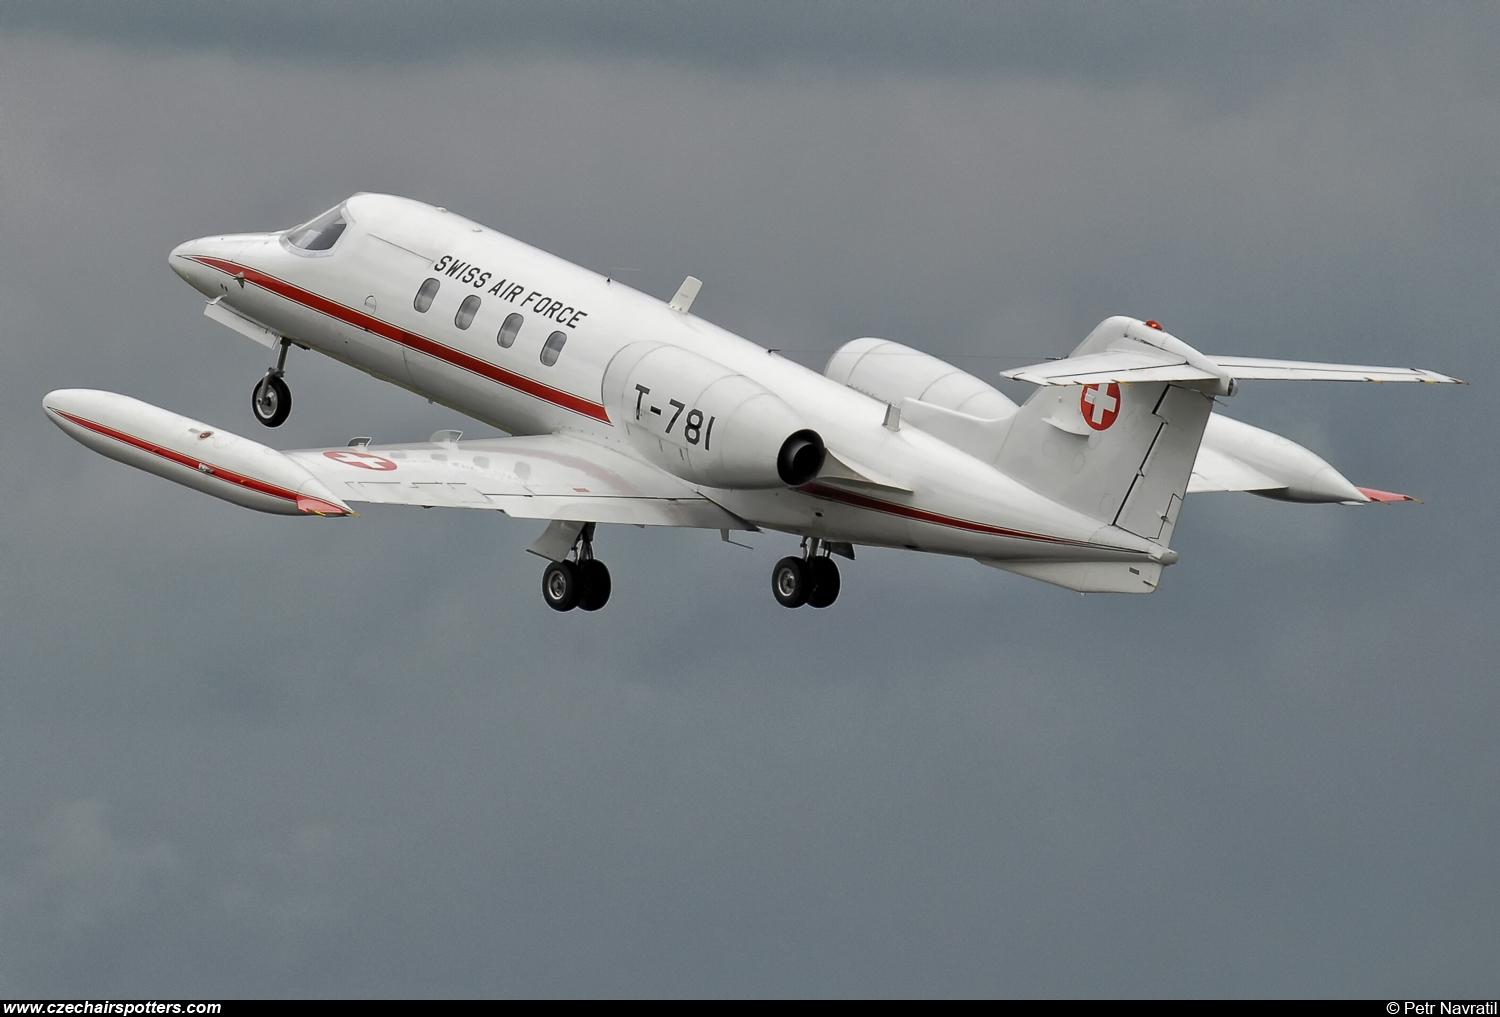 Switzerland - Air Force – Bombardier Gates Learjet 35A T-781